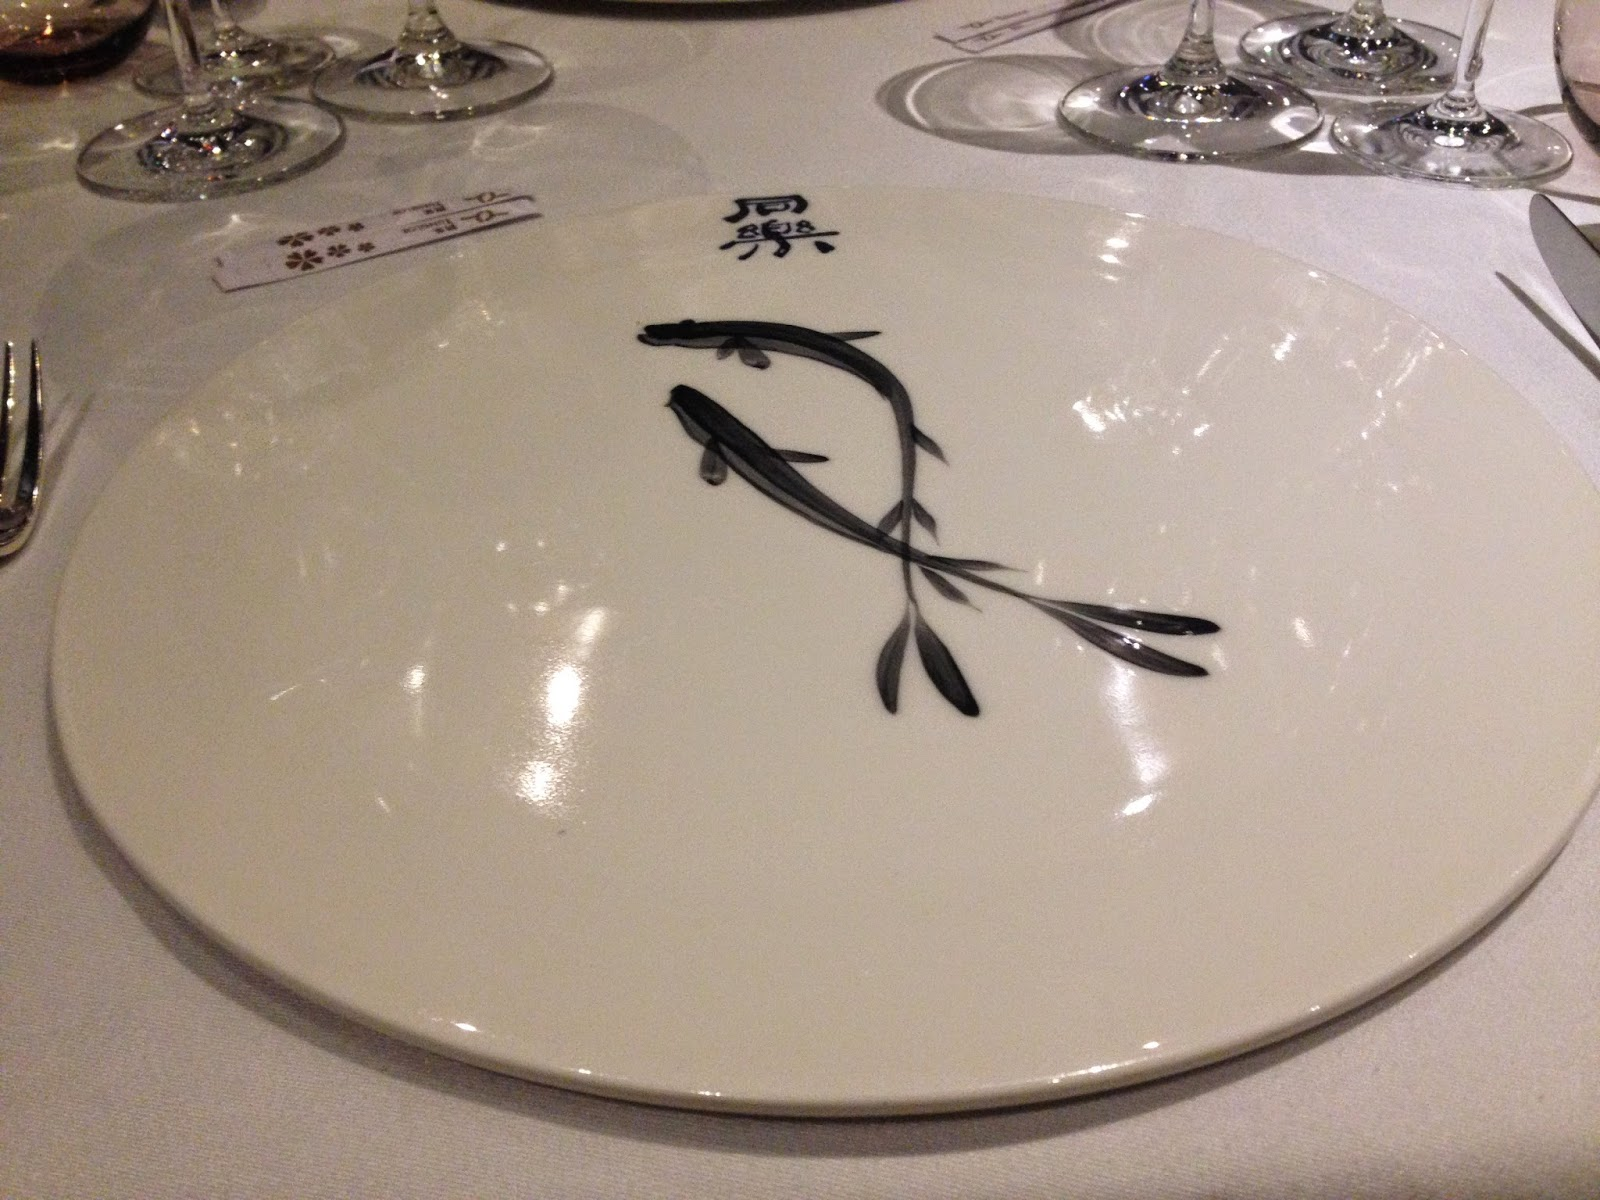 Tung lok private dining restaurant review for One fish two fish restaurant